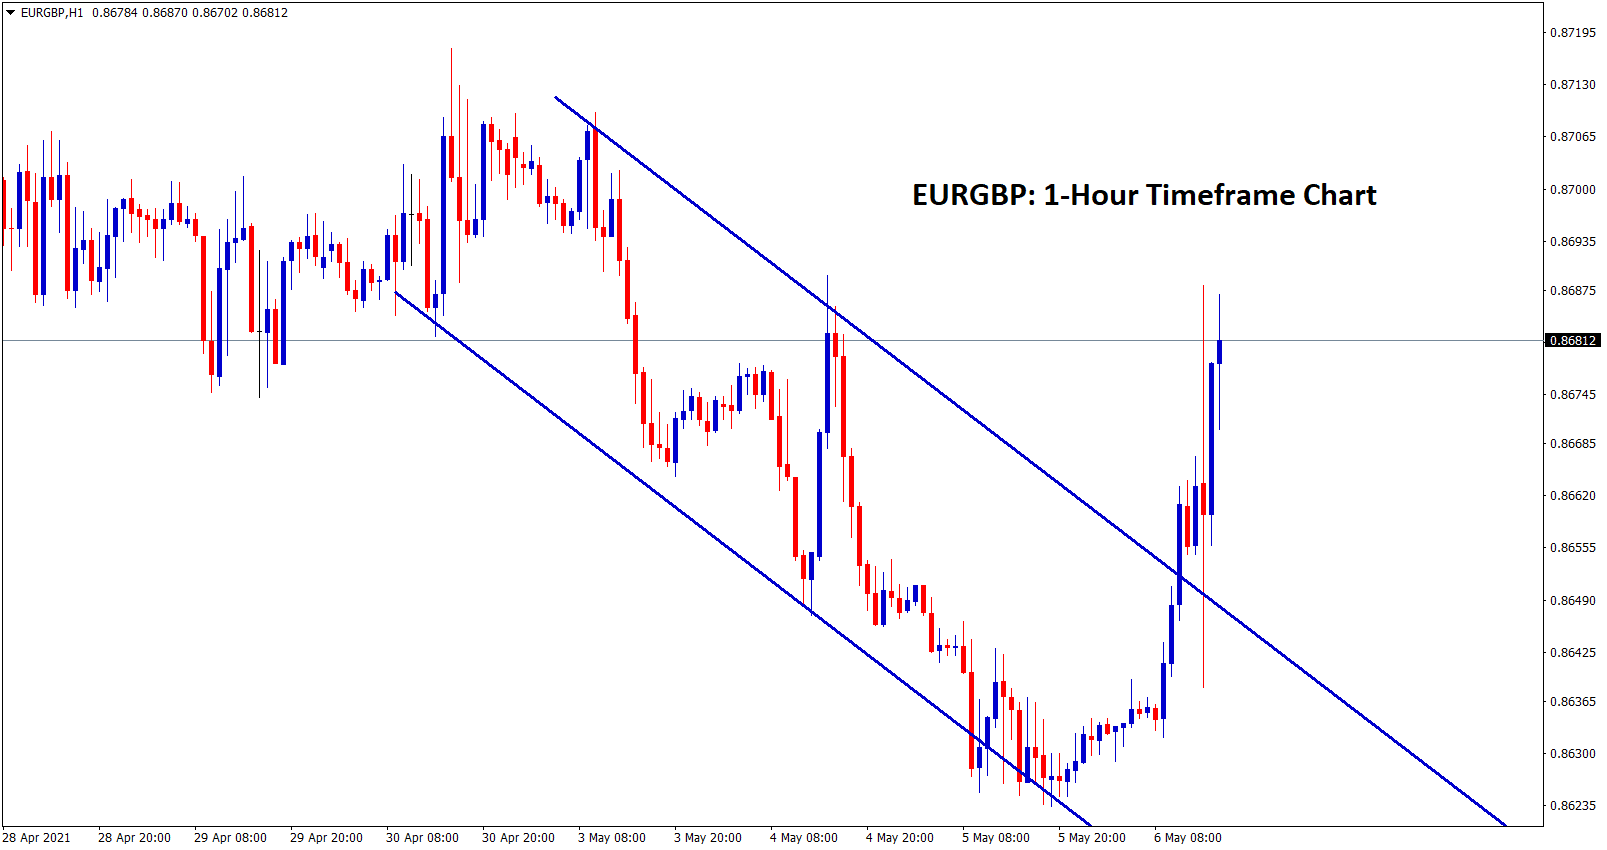 EURGBP broken the top level of the descending channel in H1